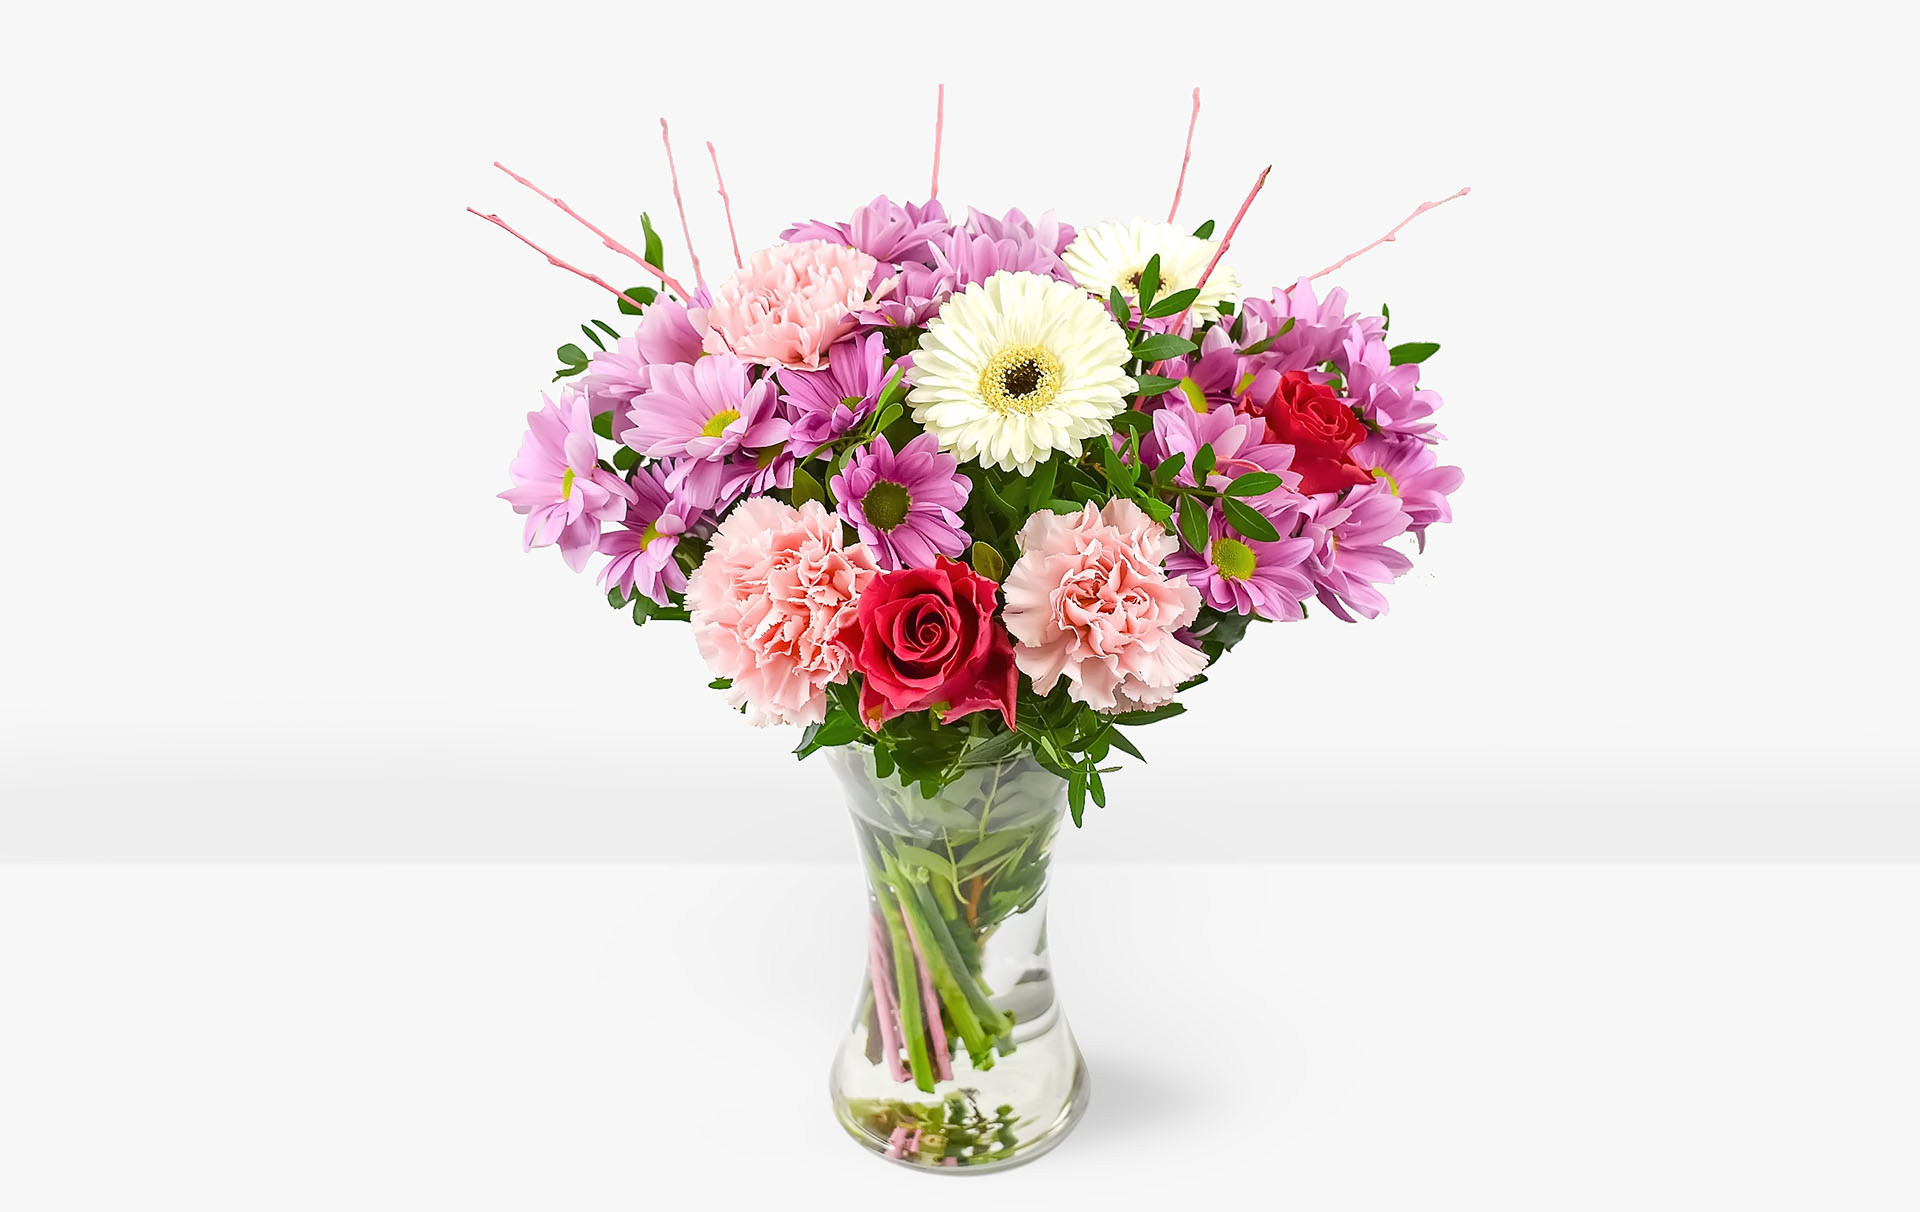 b&m flower delivery service